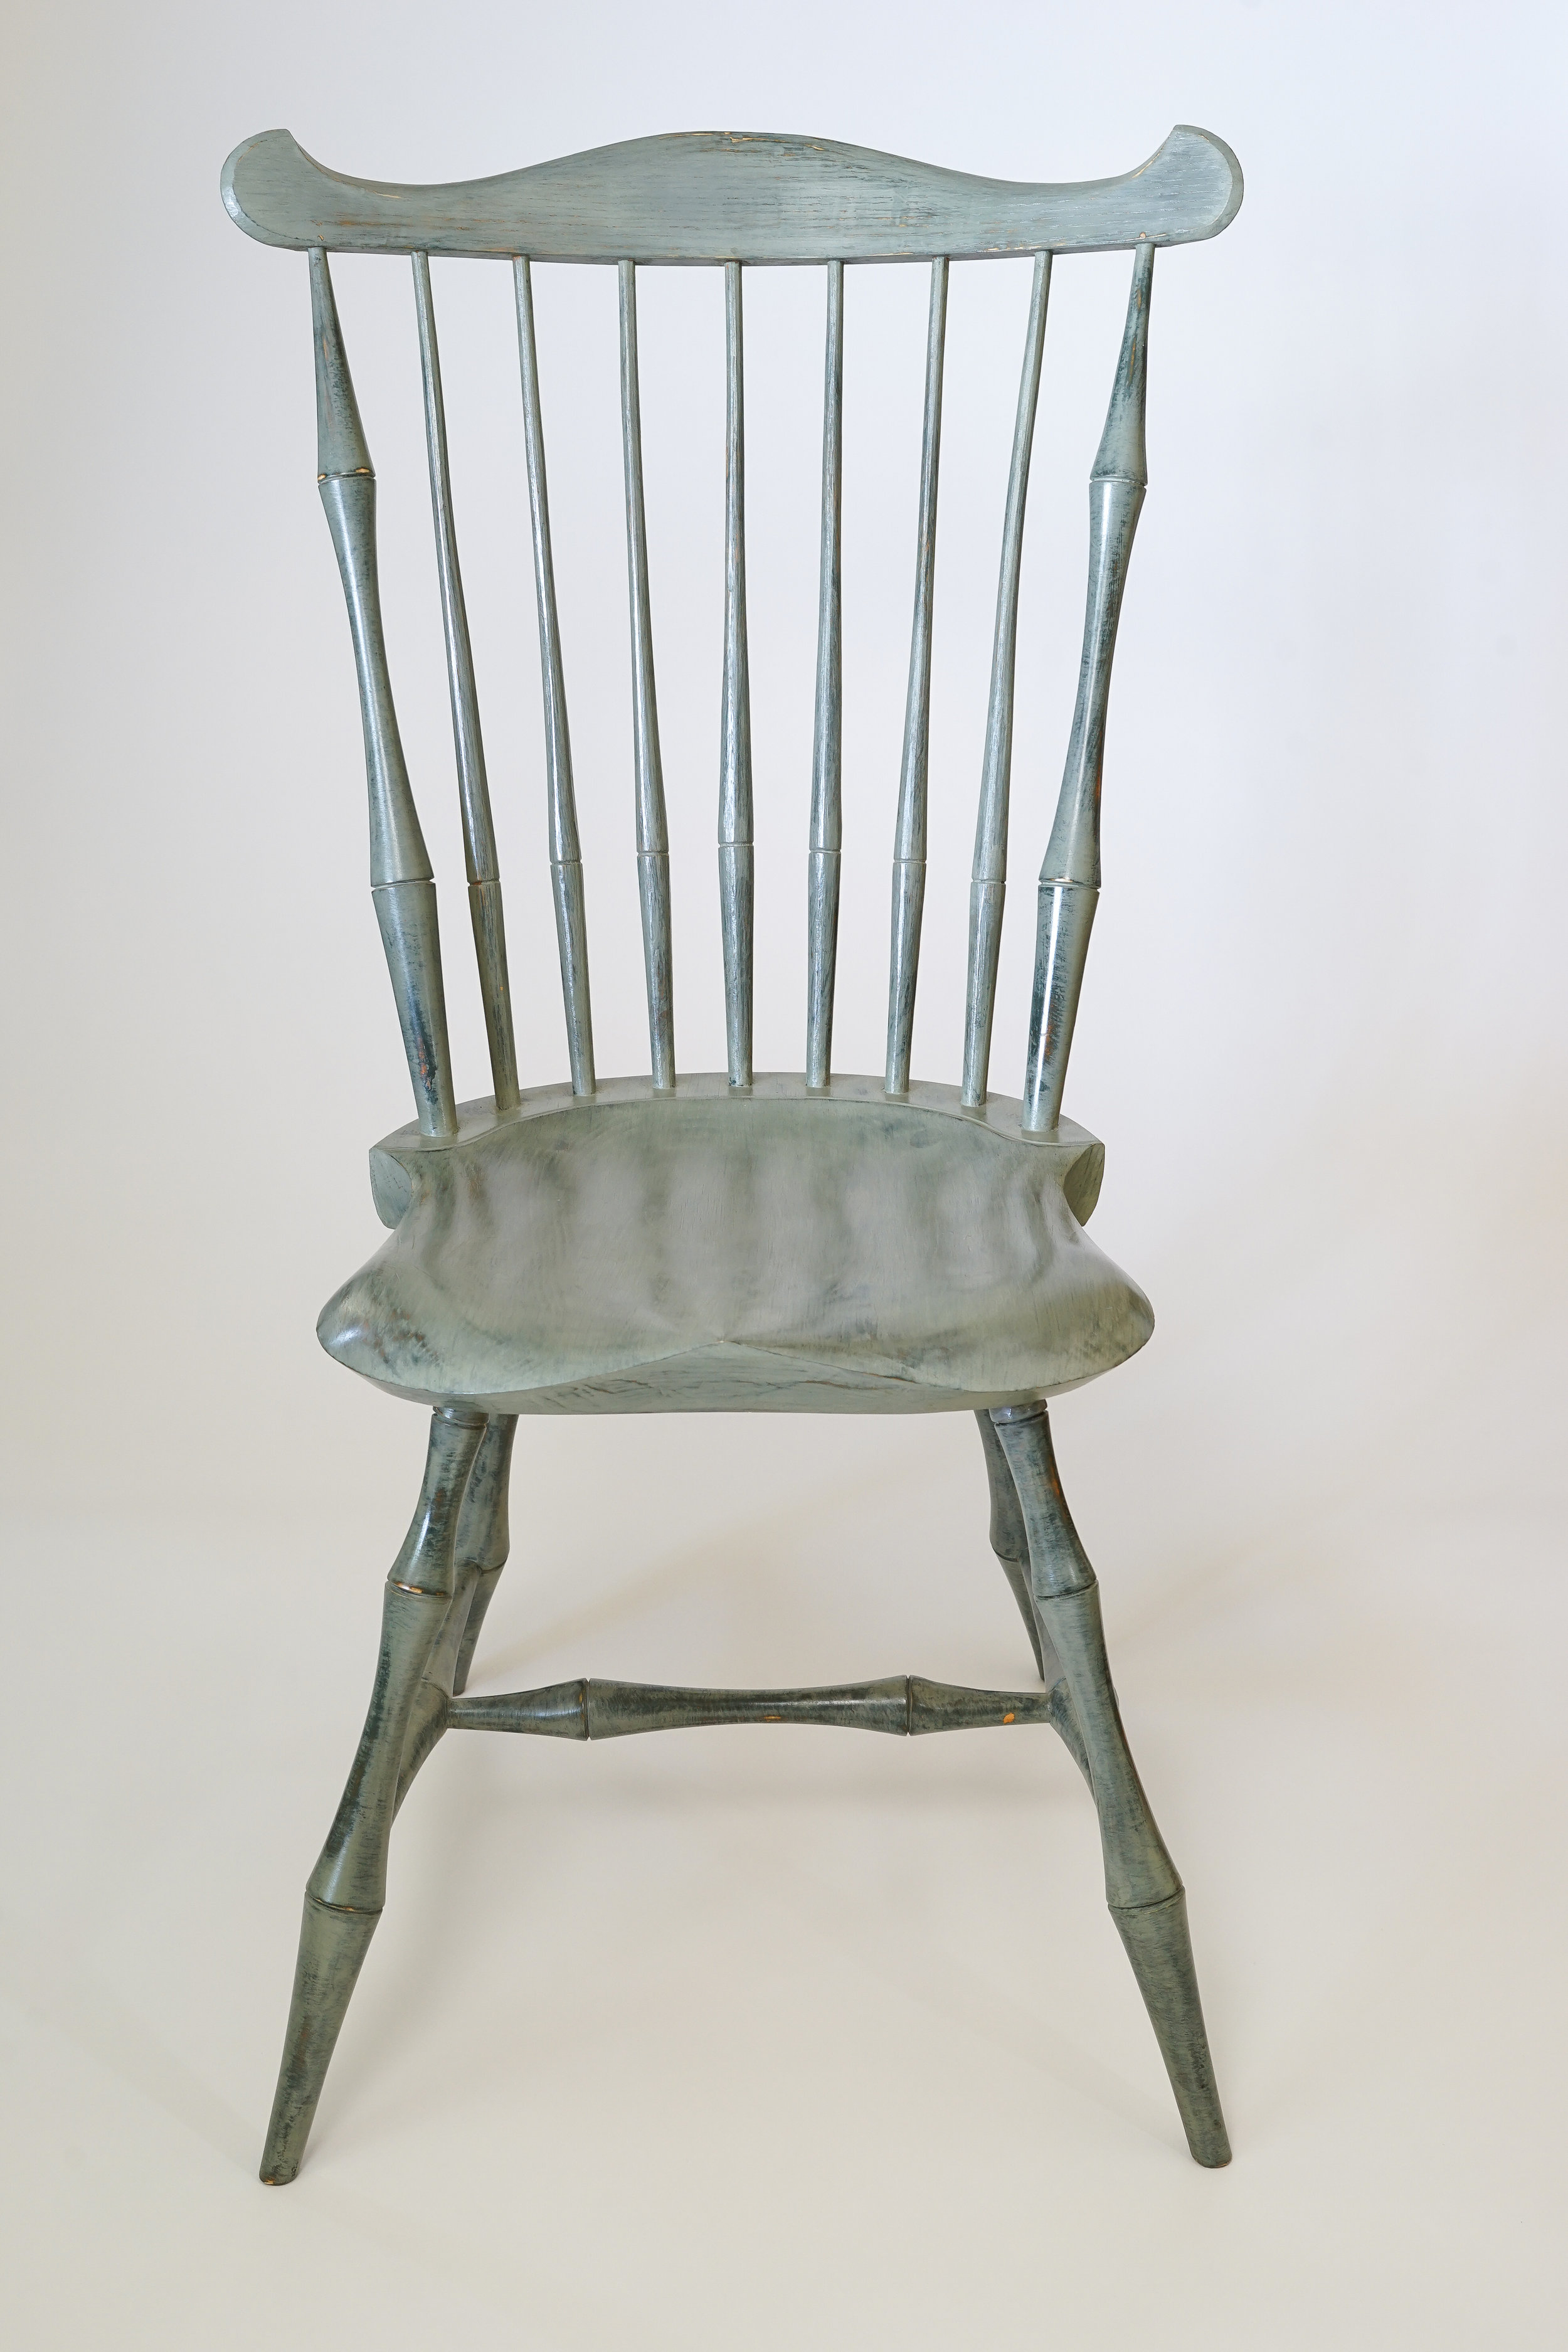 Weekend Woodworking Warrior - The Weekend Windsor Chairmaking Class at the Sam Beauford Woodworking Institute